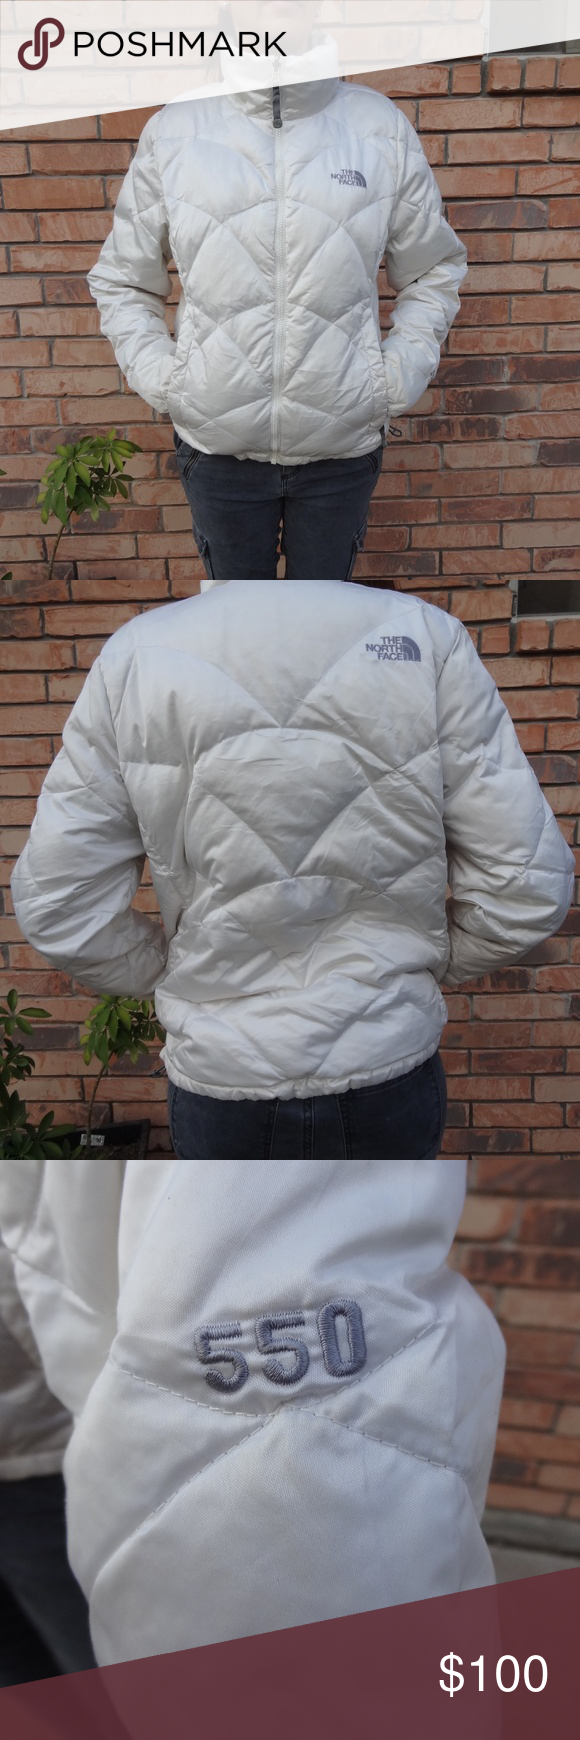 Women S The North Face Pearl White Down Jacket M Clothes Design Fashion Jackets For Women [ 1740 x 580 Pixel ]